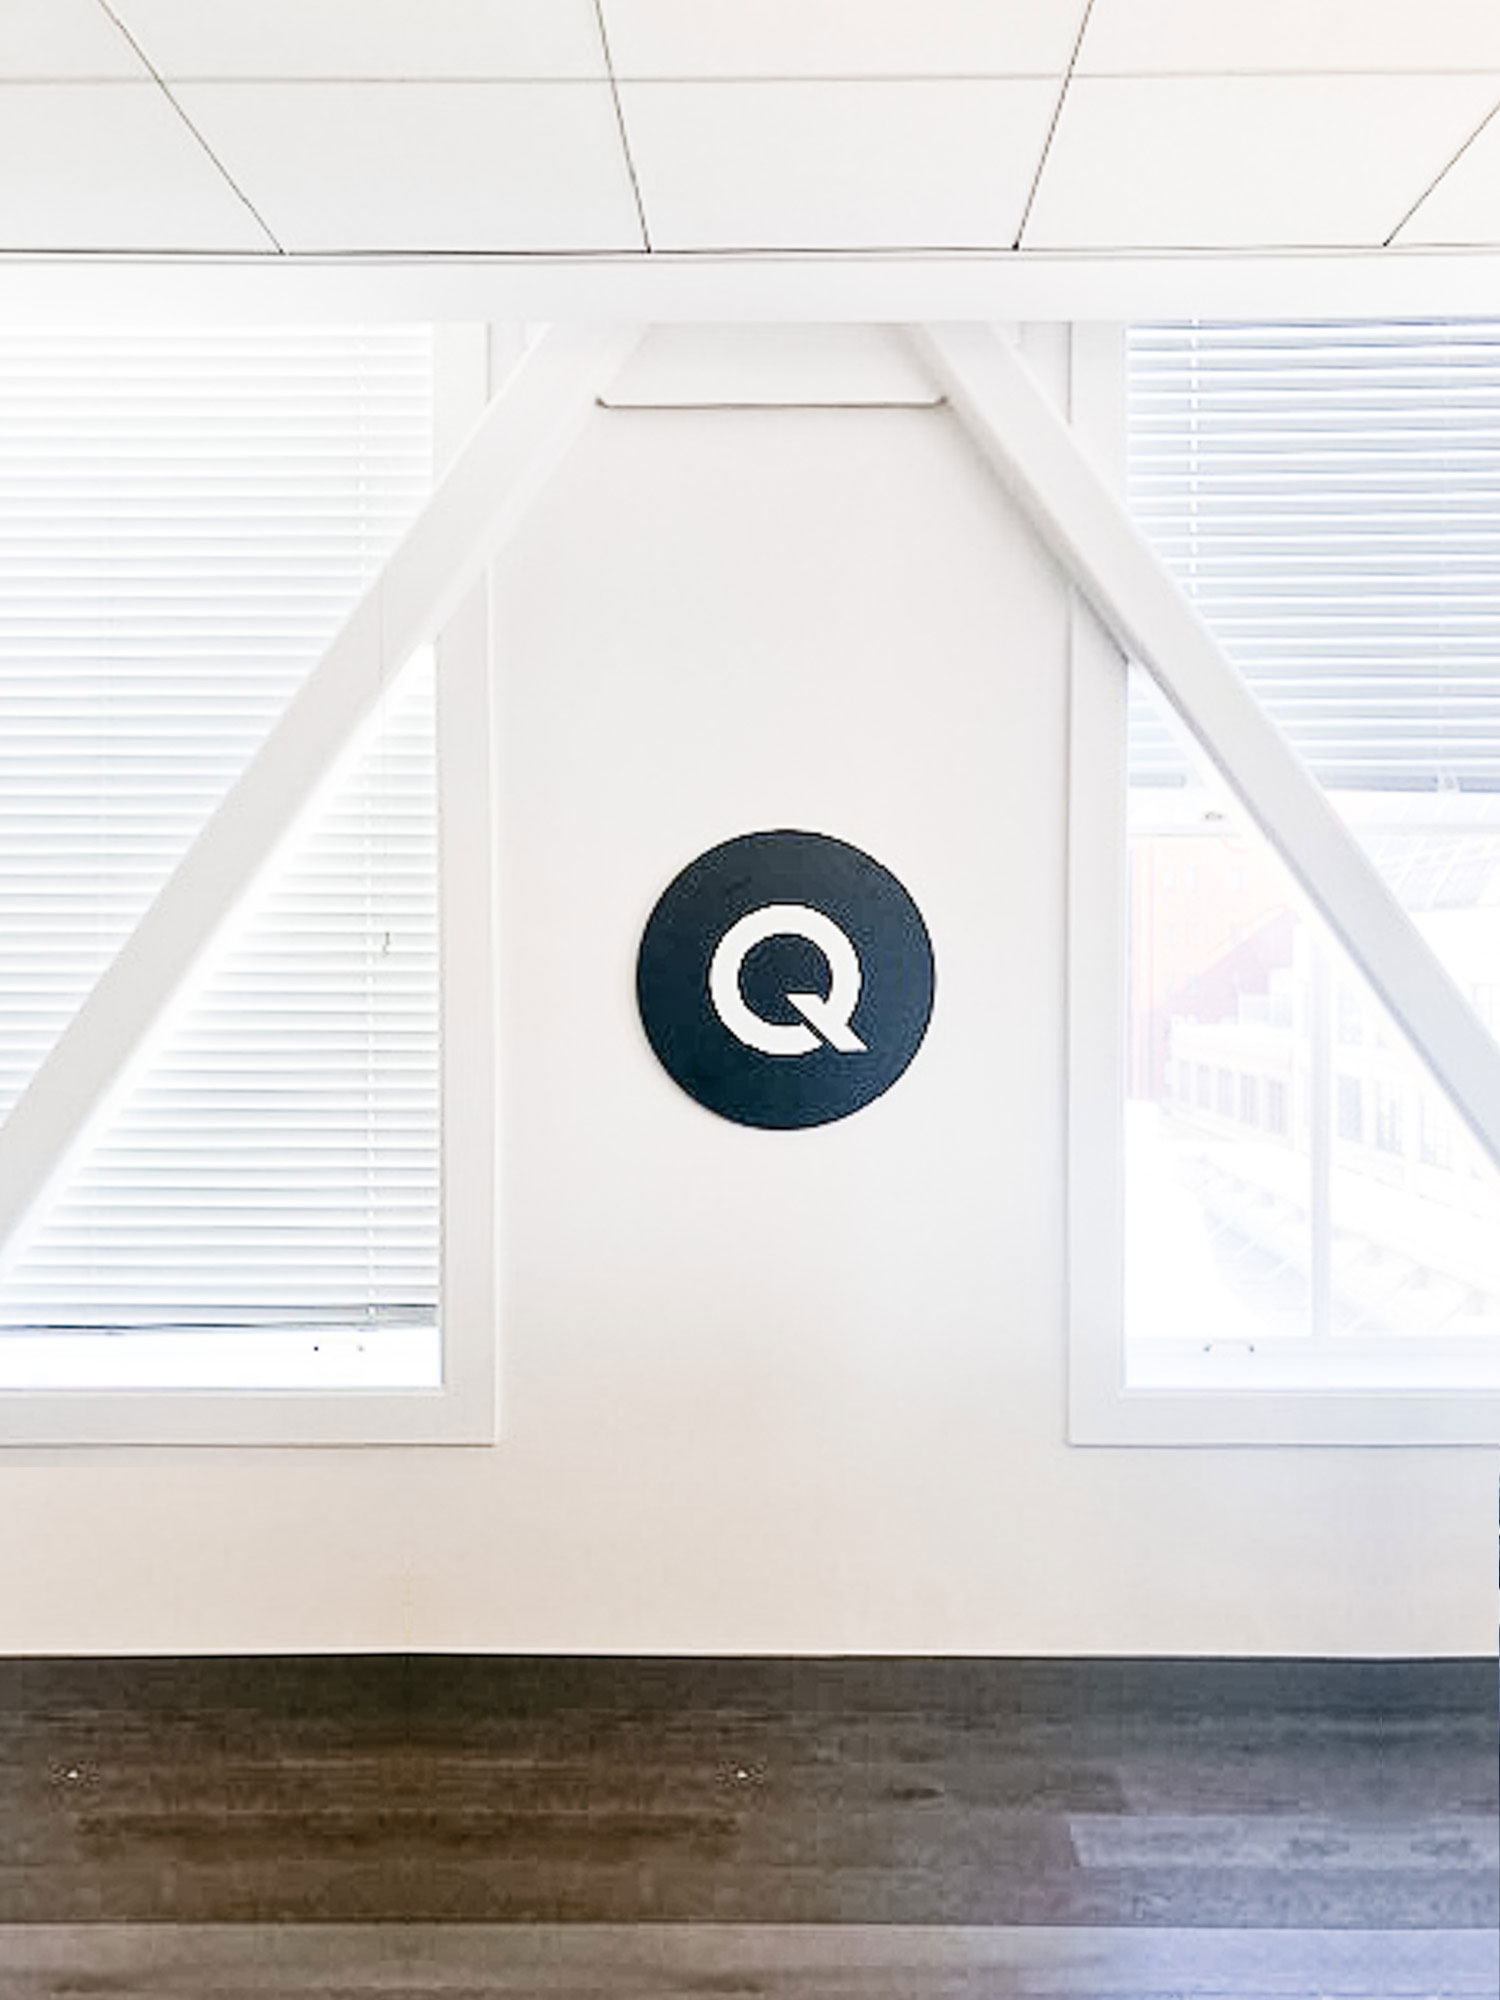 Black and white circular sign on white wall for the office of Qordoba, a content AI technology to help organizations achieve consistency and clarity across all types of content.